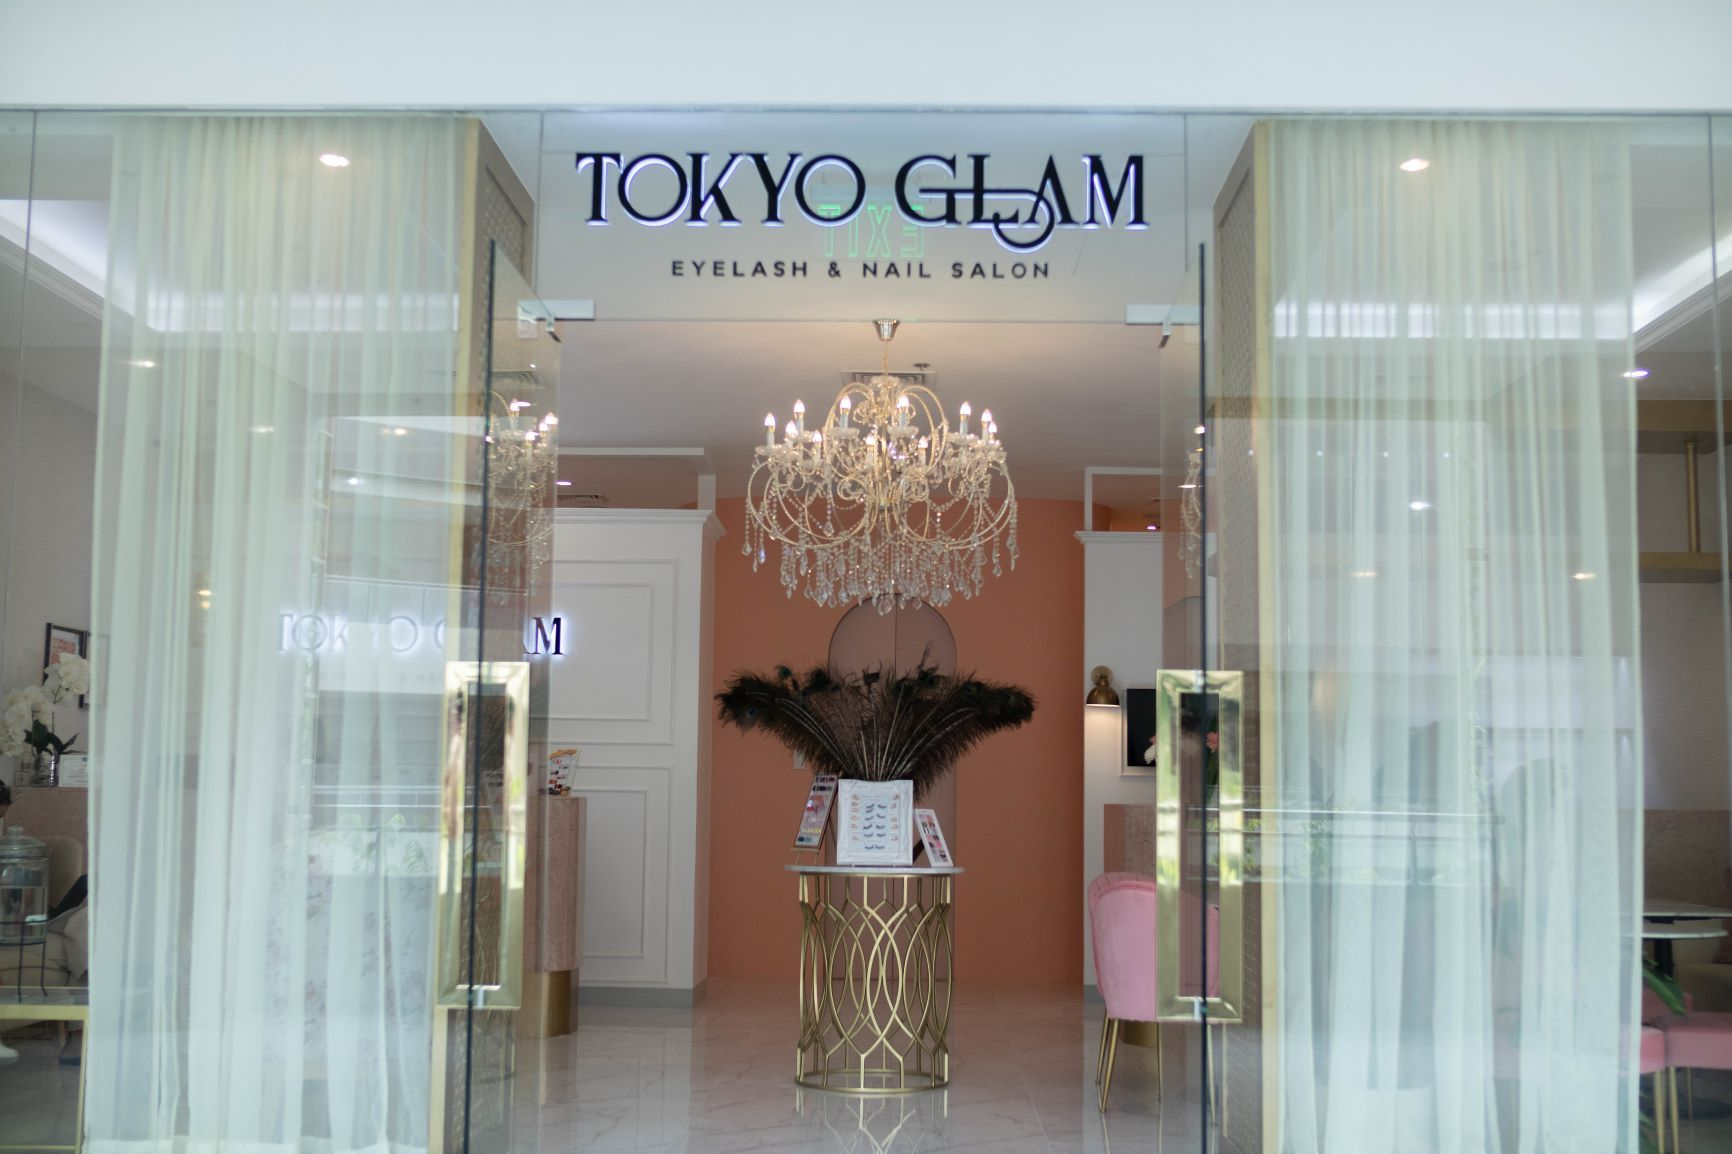 TokyoGLAM: This Authentic Japanese Salon Offers Private Rooms For A Safe Pamper Sesh